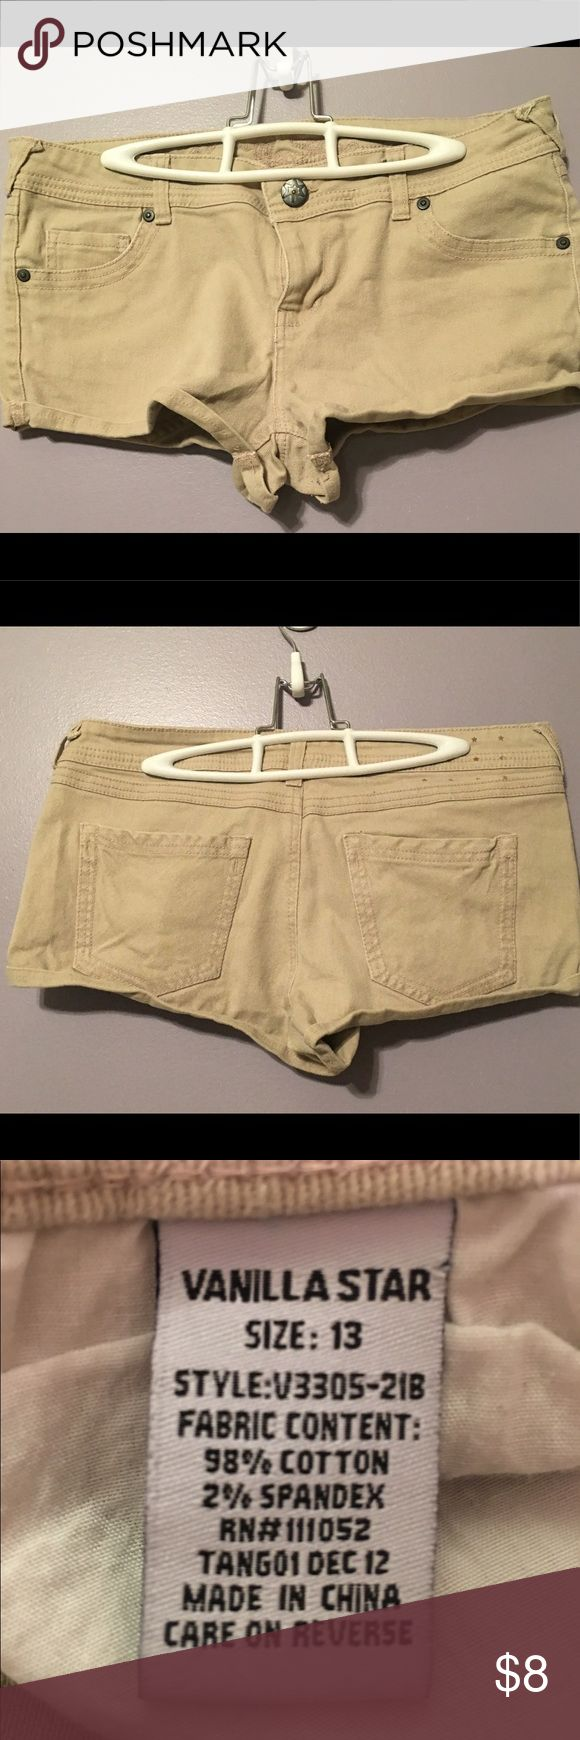 Shorts Tan jean like short shorts. Gently used still in great condition. Perfect for summer! Vanilla Star Shorts